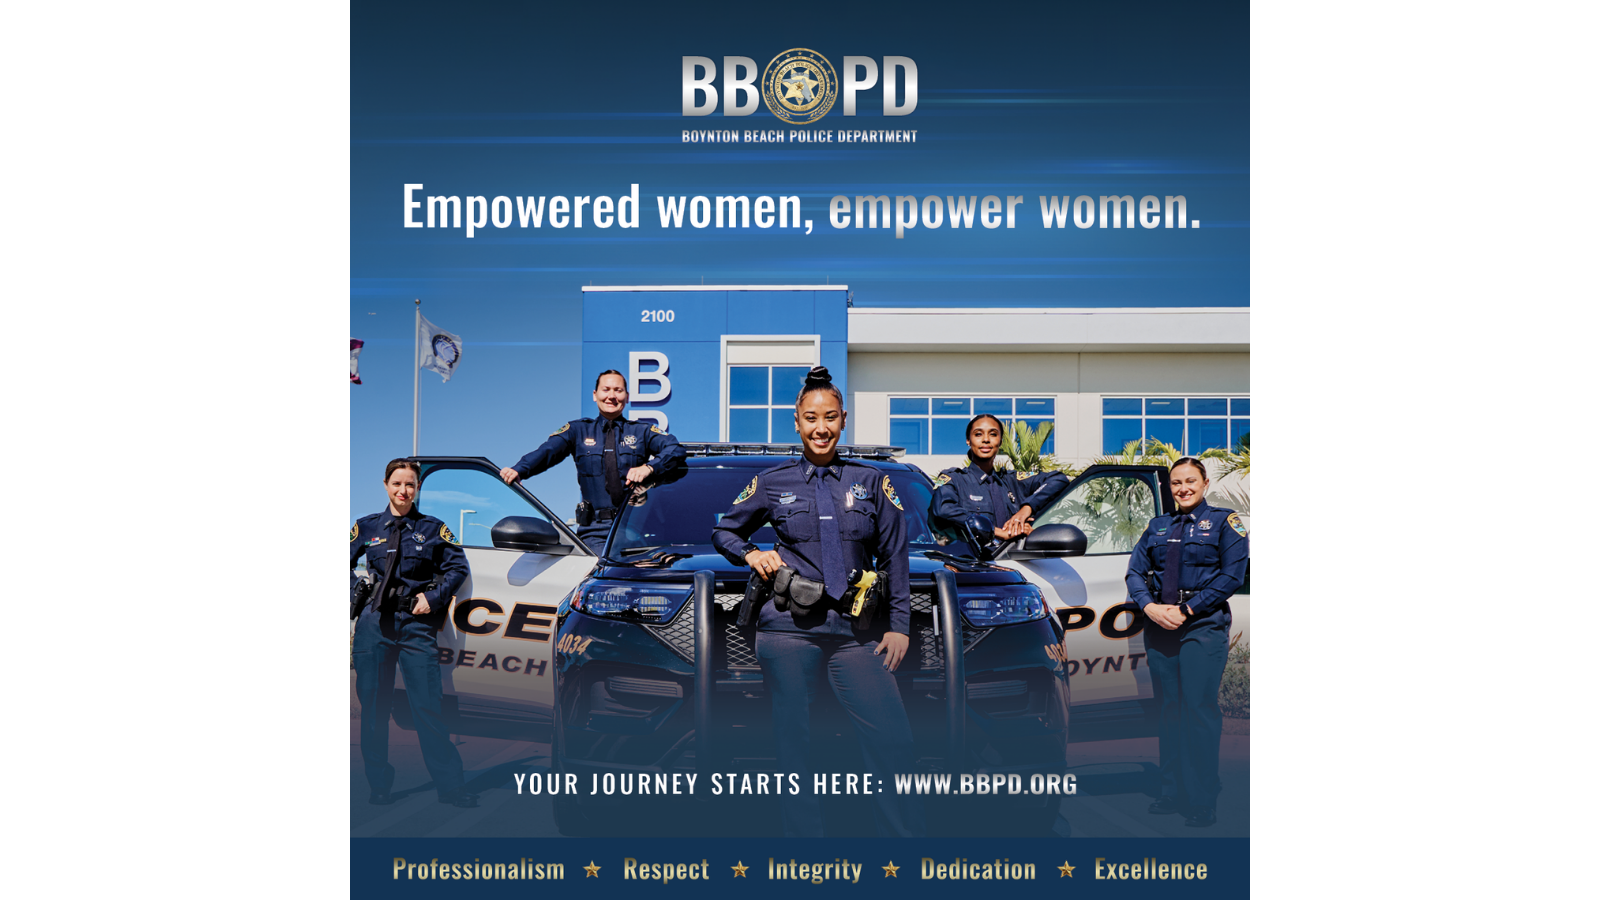 5 female police officers standing next to police car in front of police department